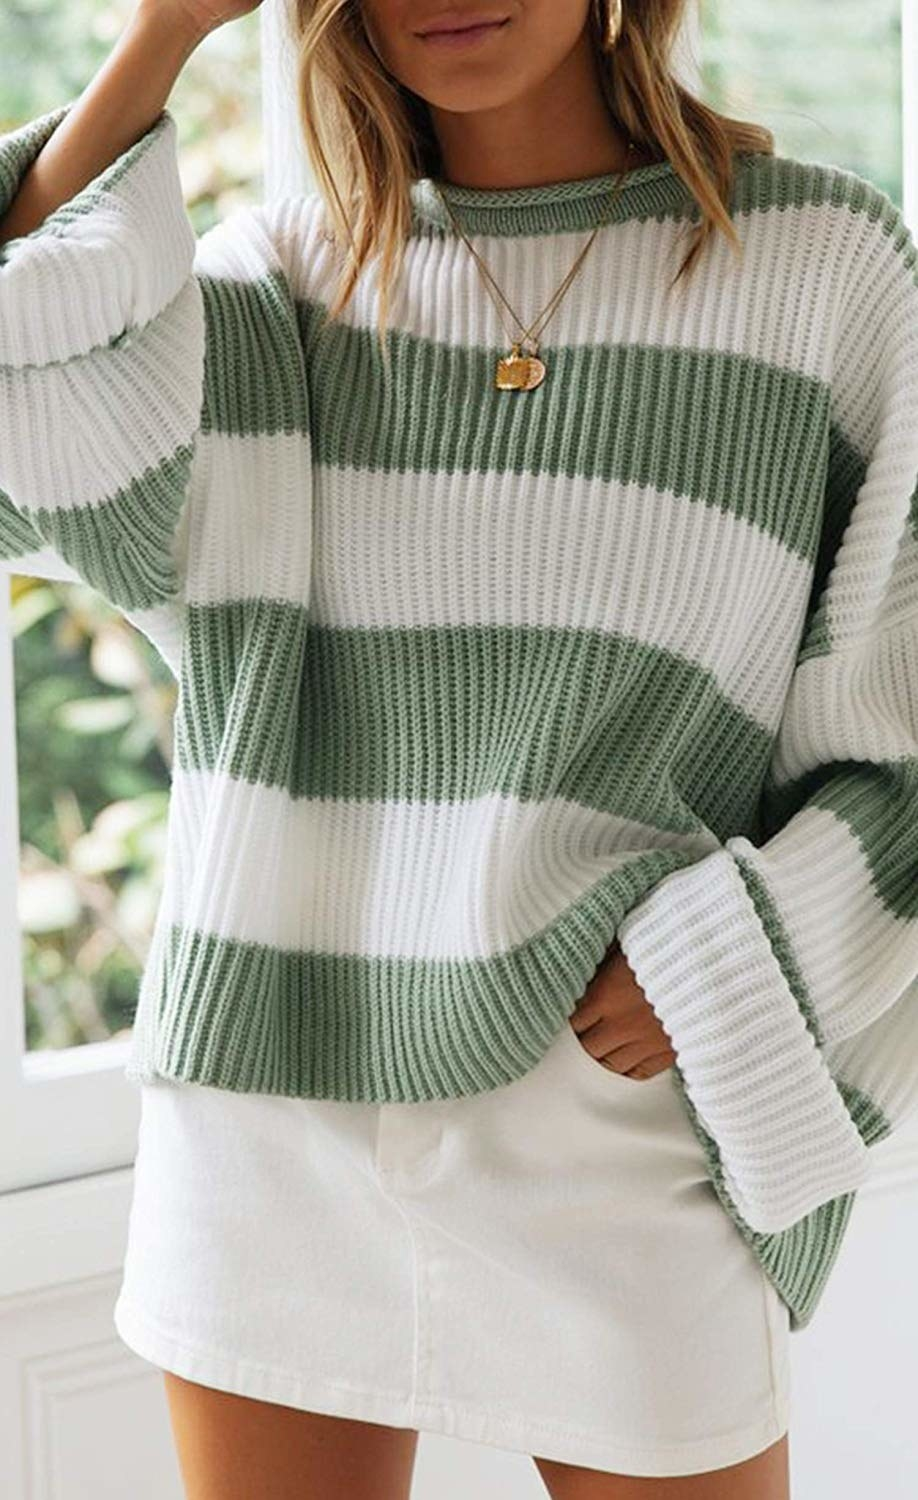 model wears oversized knit sweater with chunky cuffed sleeves and thick stripes